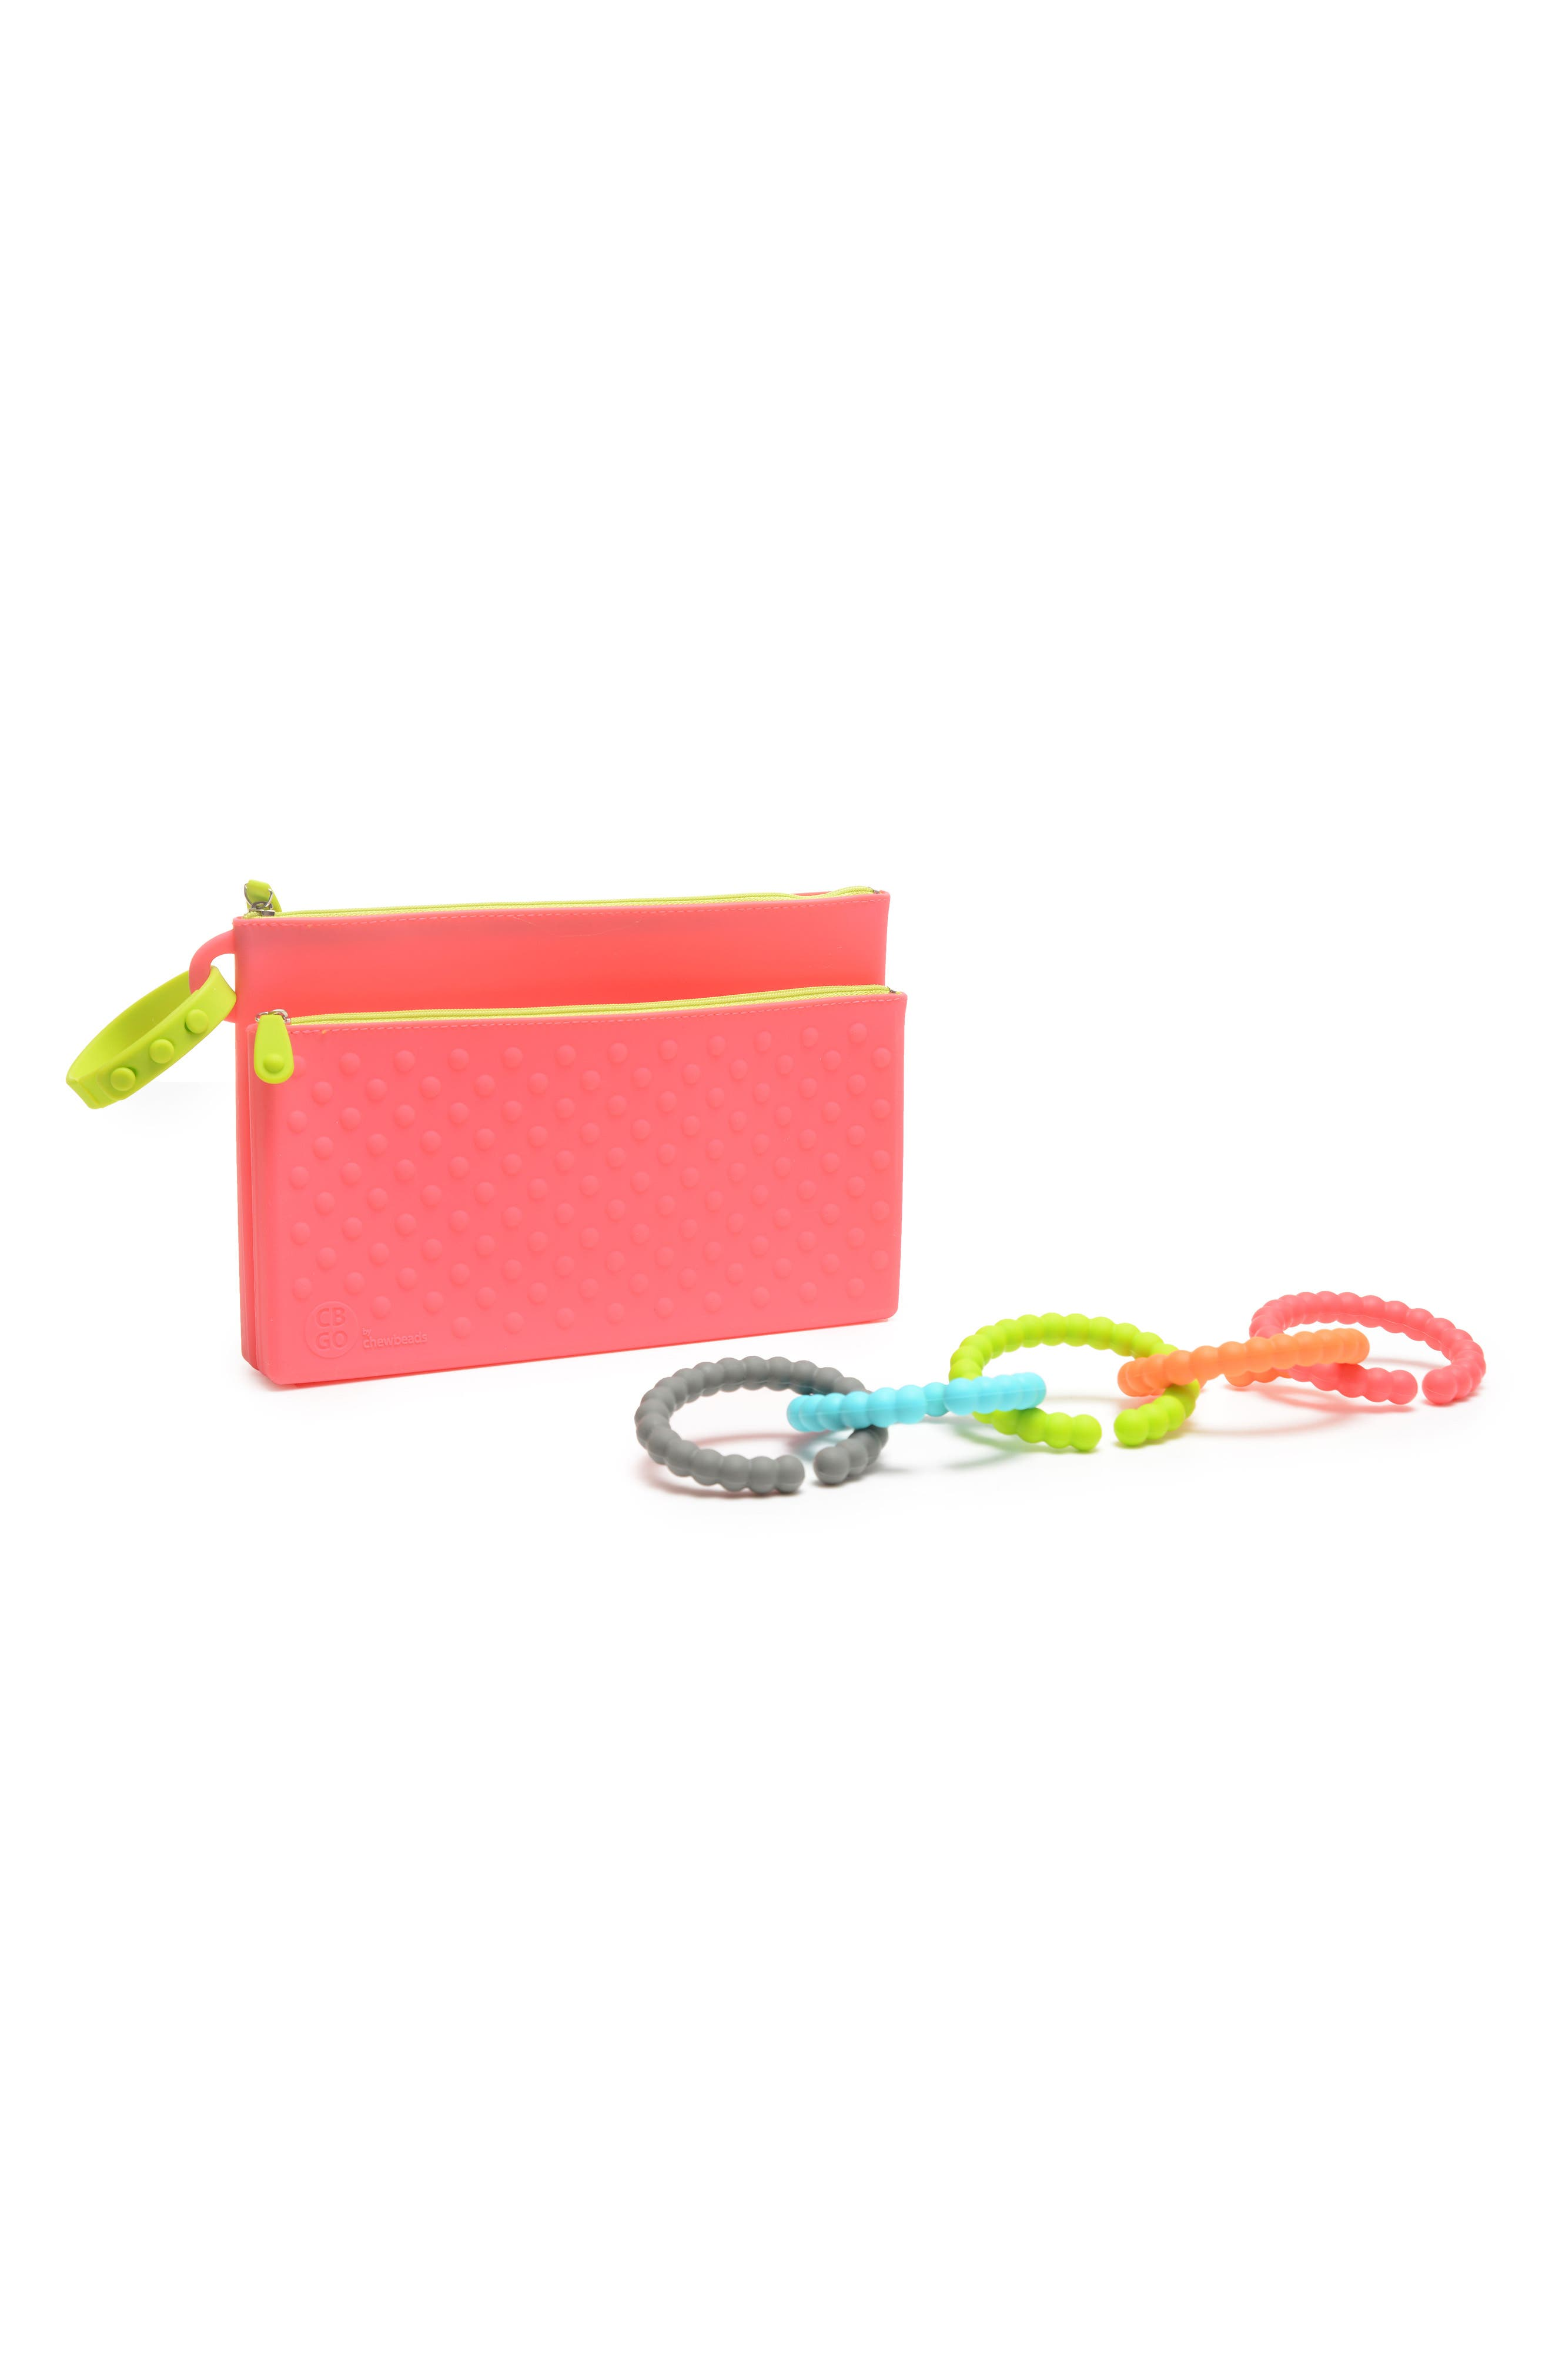 GO Wipes Case & Teething Links Set,                         Main,                         color, Punchy Pink